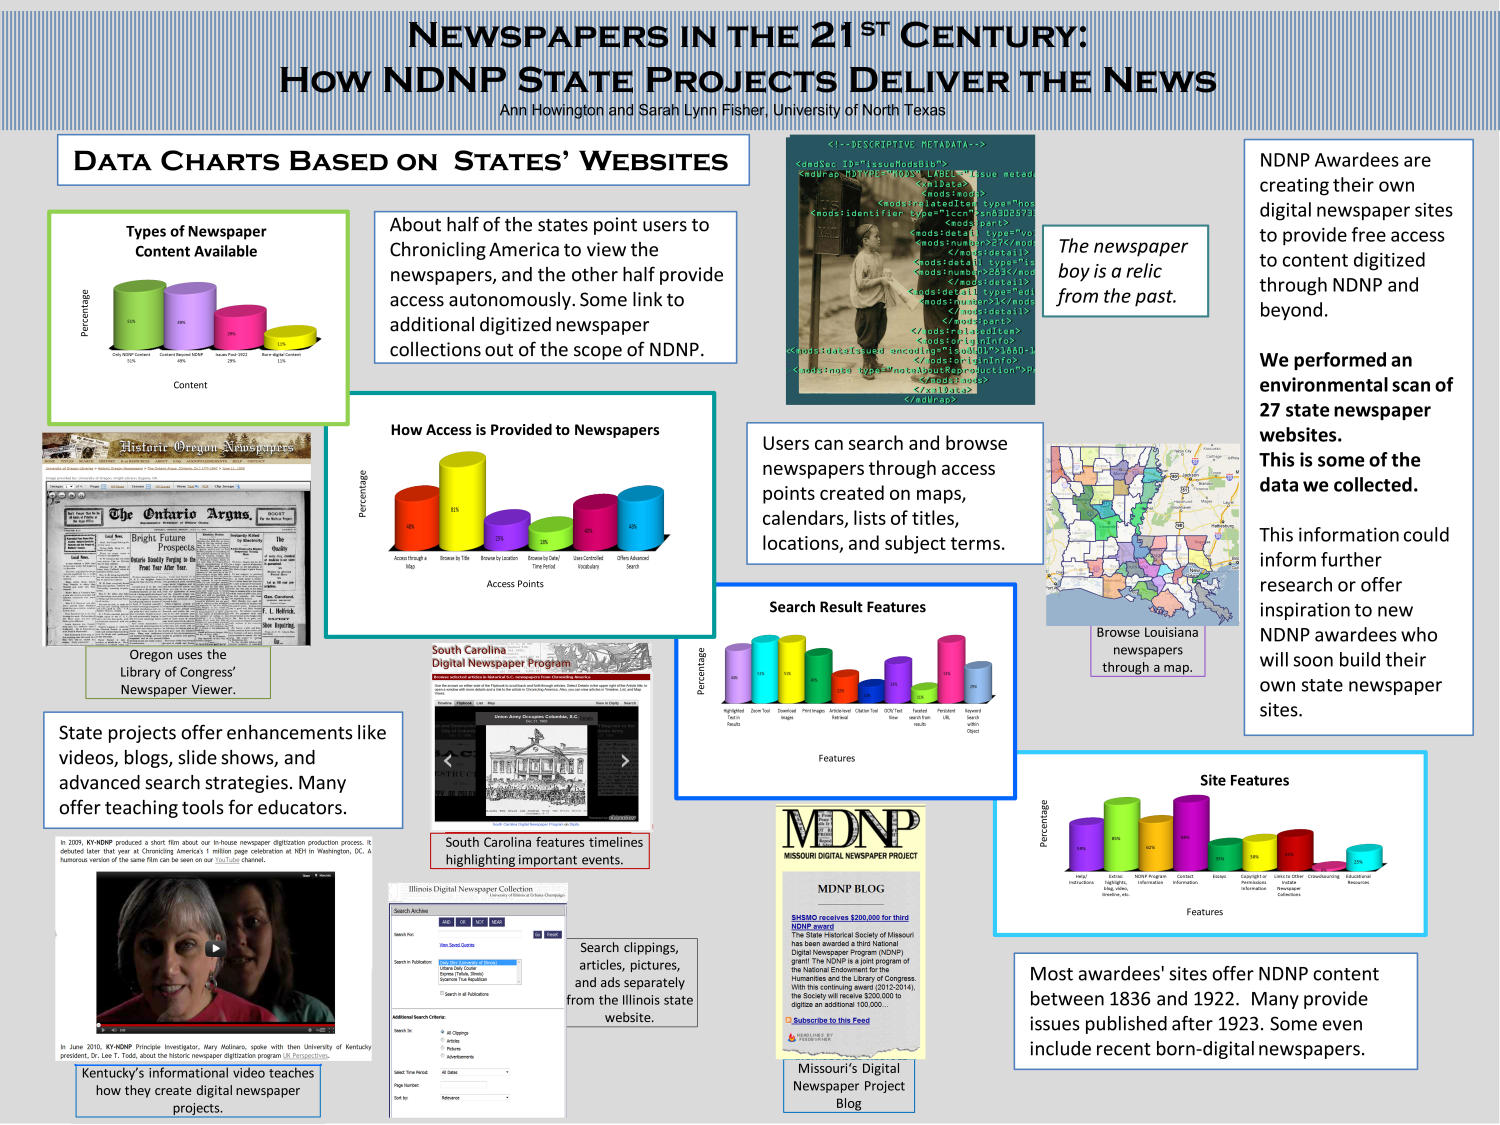 Newspapers In The 21st Century: How NDNP State Projects Deliver The News                                                                                                      [Sequence #]: 1 of 1